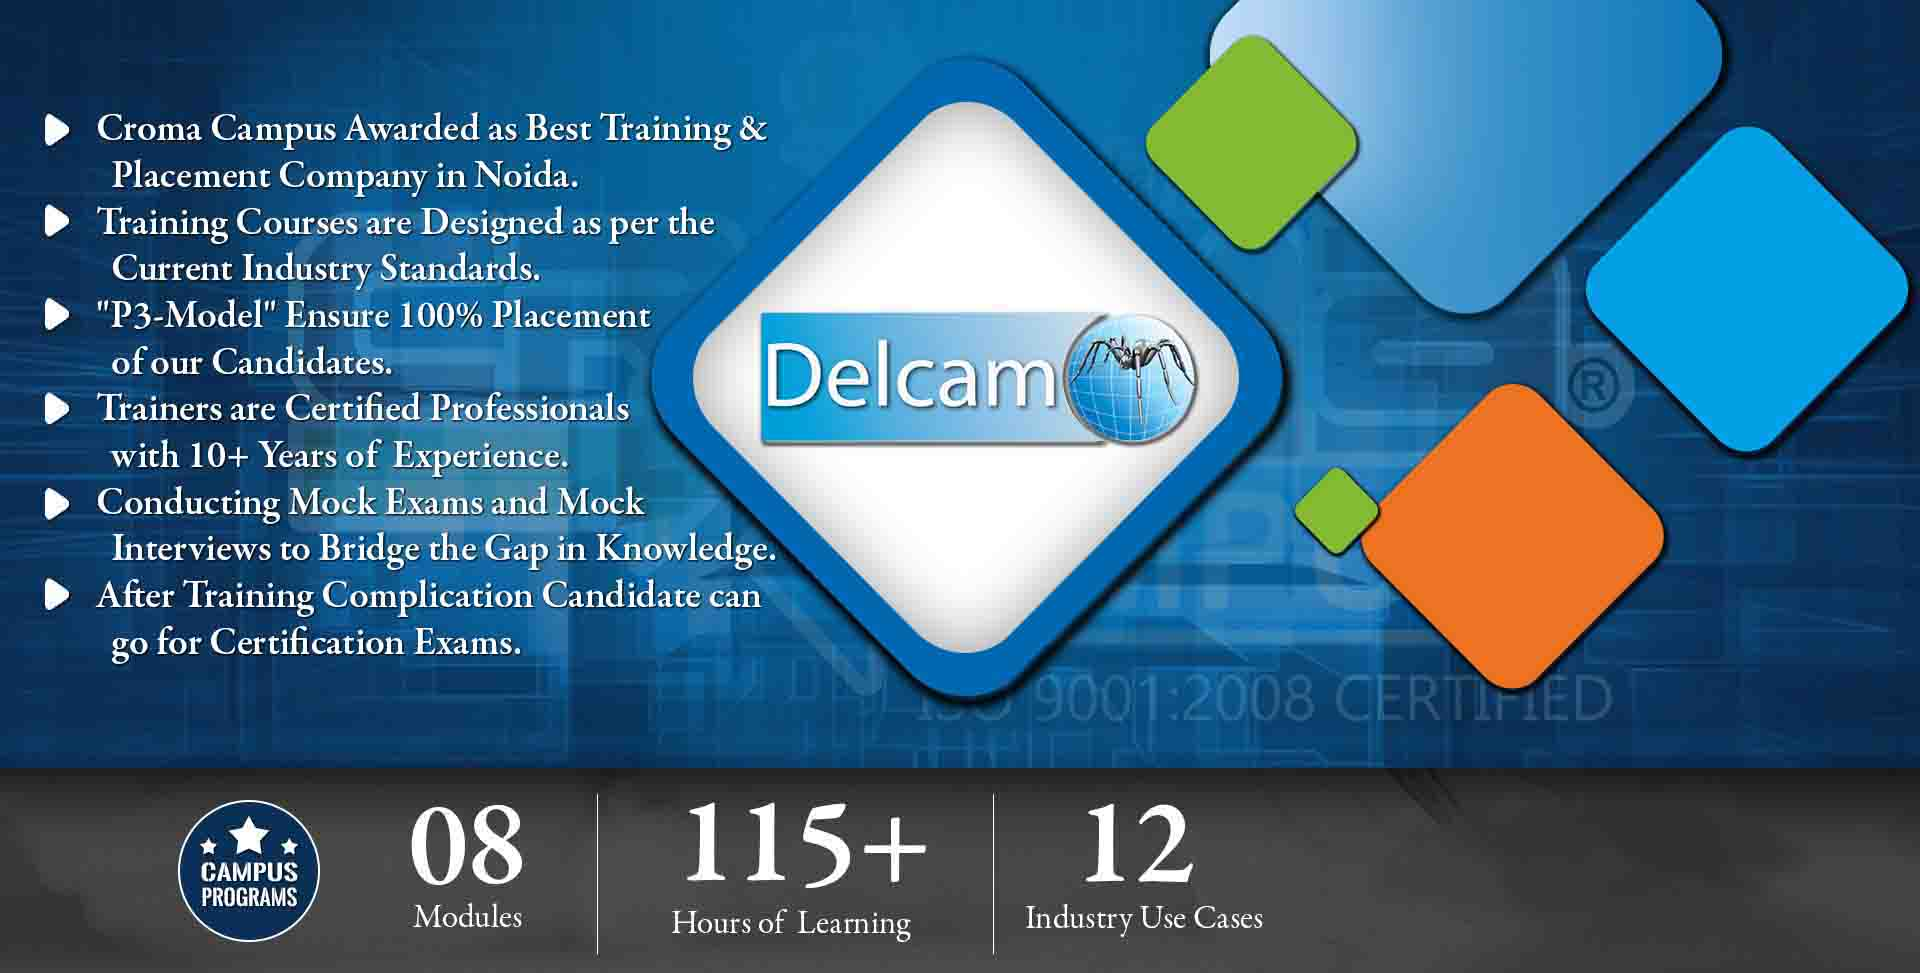 Delcam Training in Noida- Croma Campus